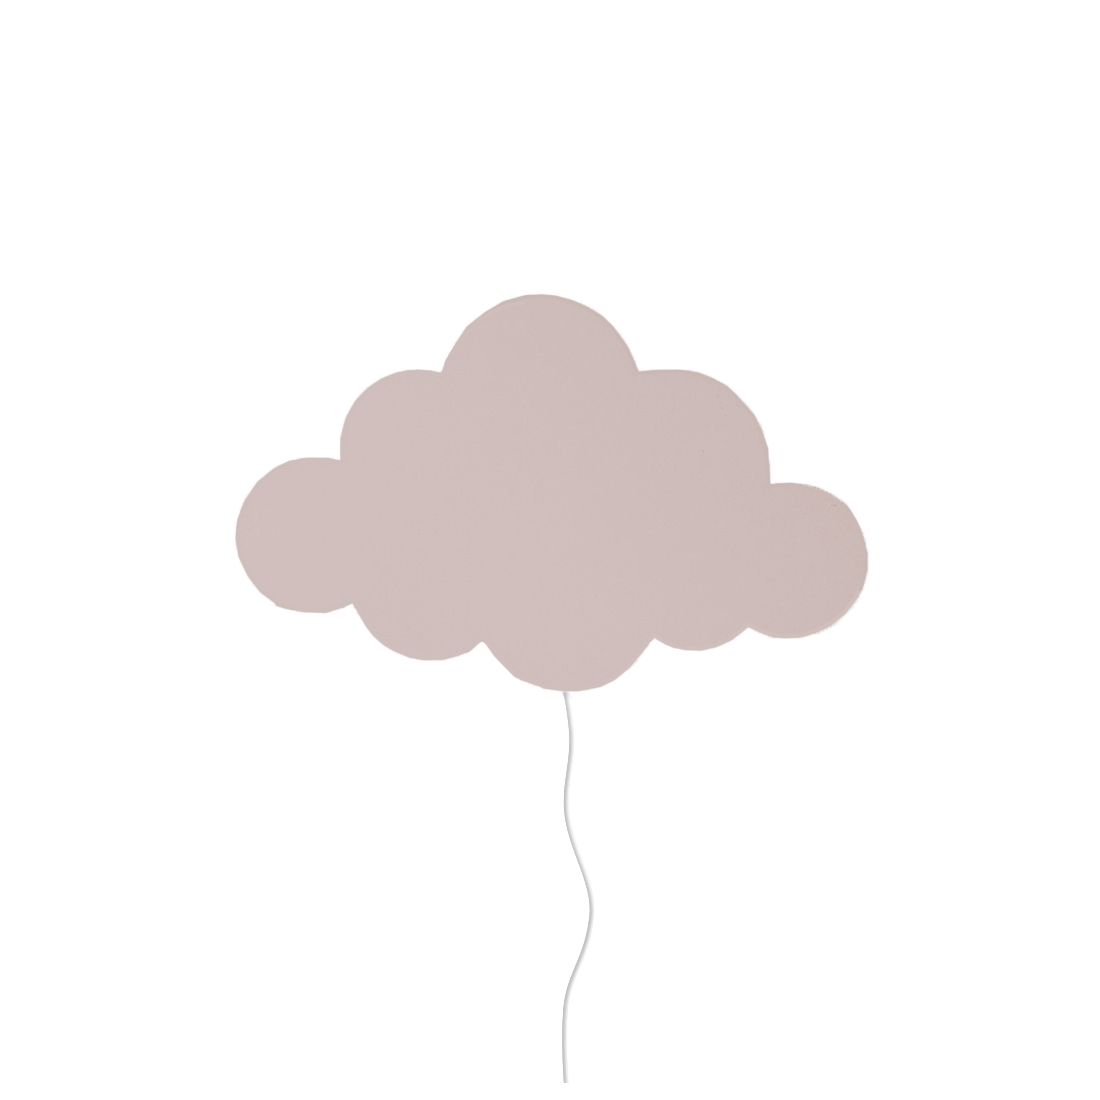 Barnlampa Cloud Dusty rose, Ferm living